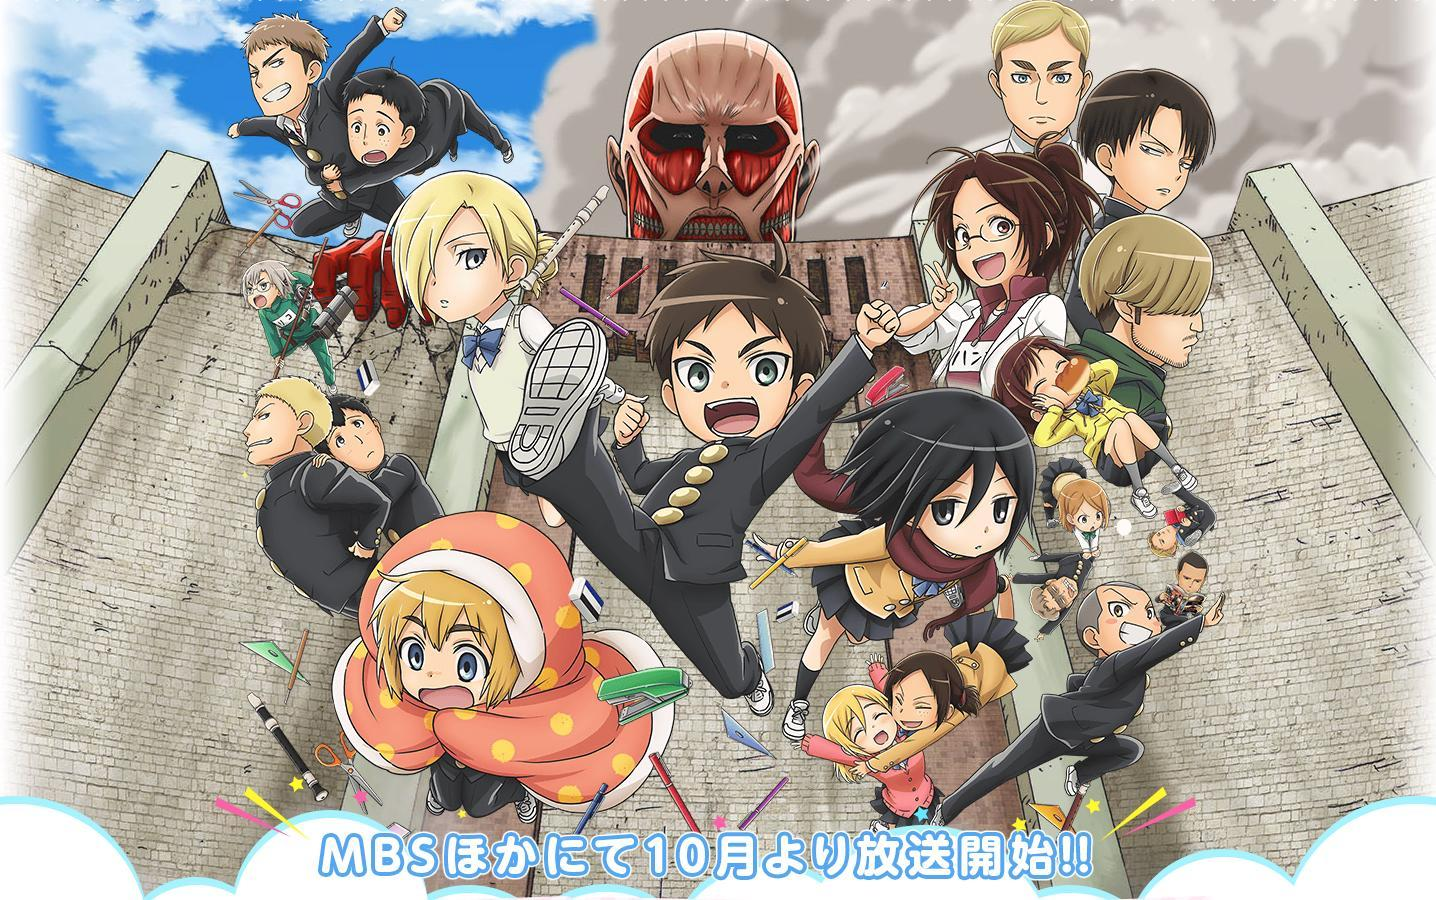 Attack on titan may be popular but how much do you actually know about the series? Attack On Titan Chibi Wallpapers HD - Wallpaper Cave